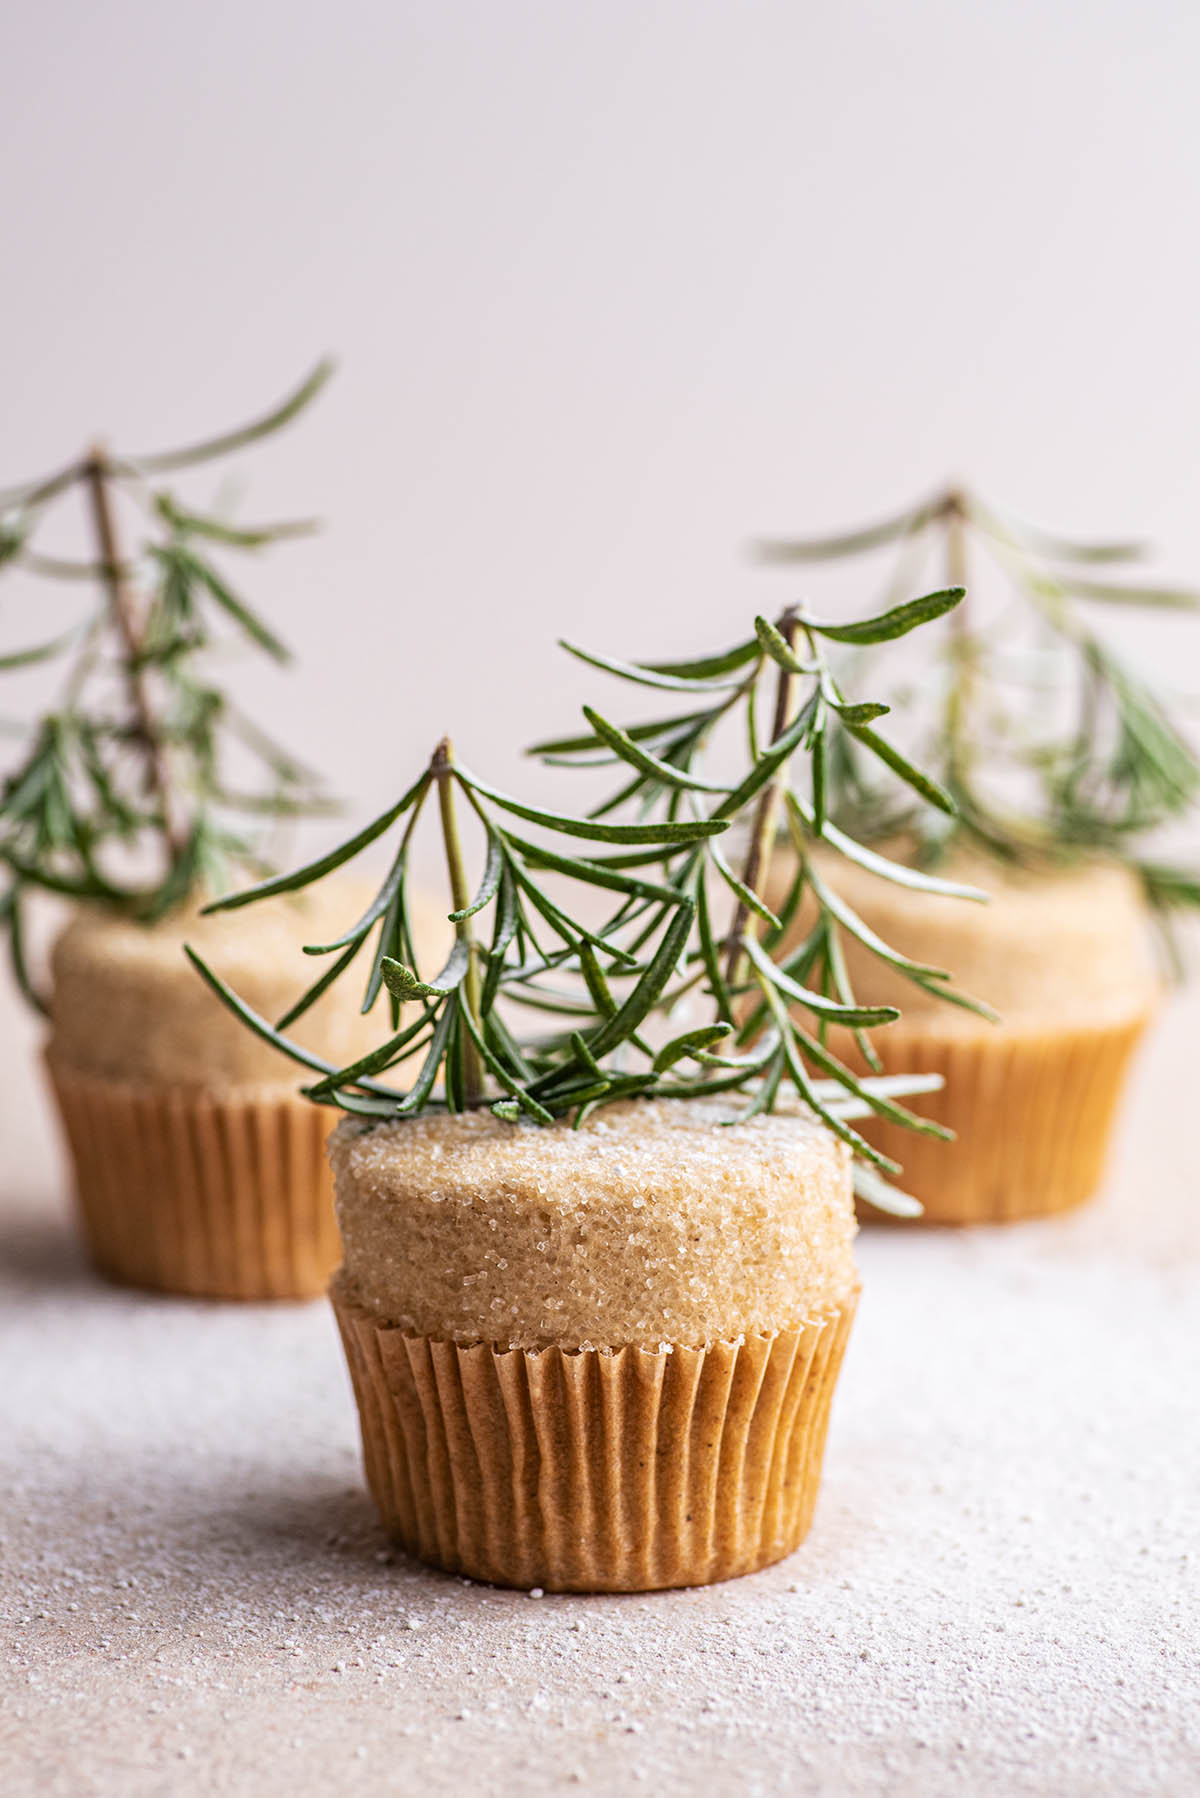 Three rosemary-topped cupcakes.